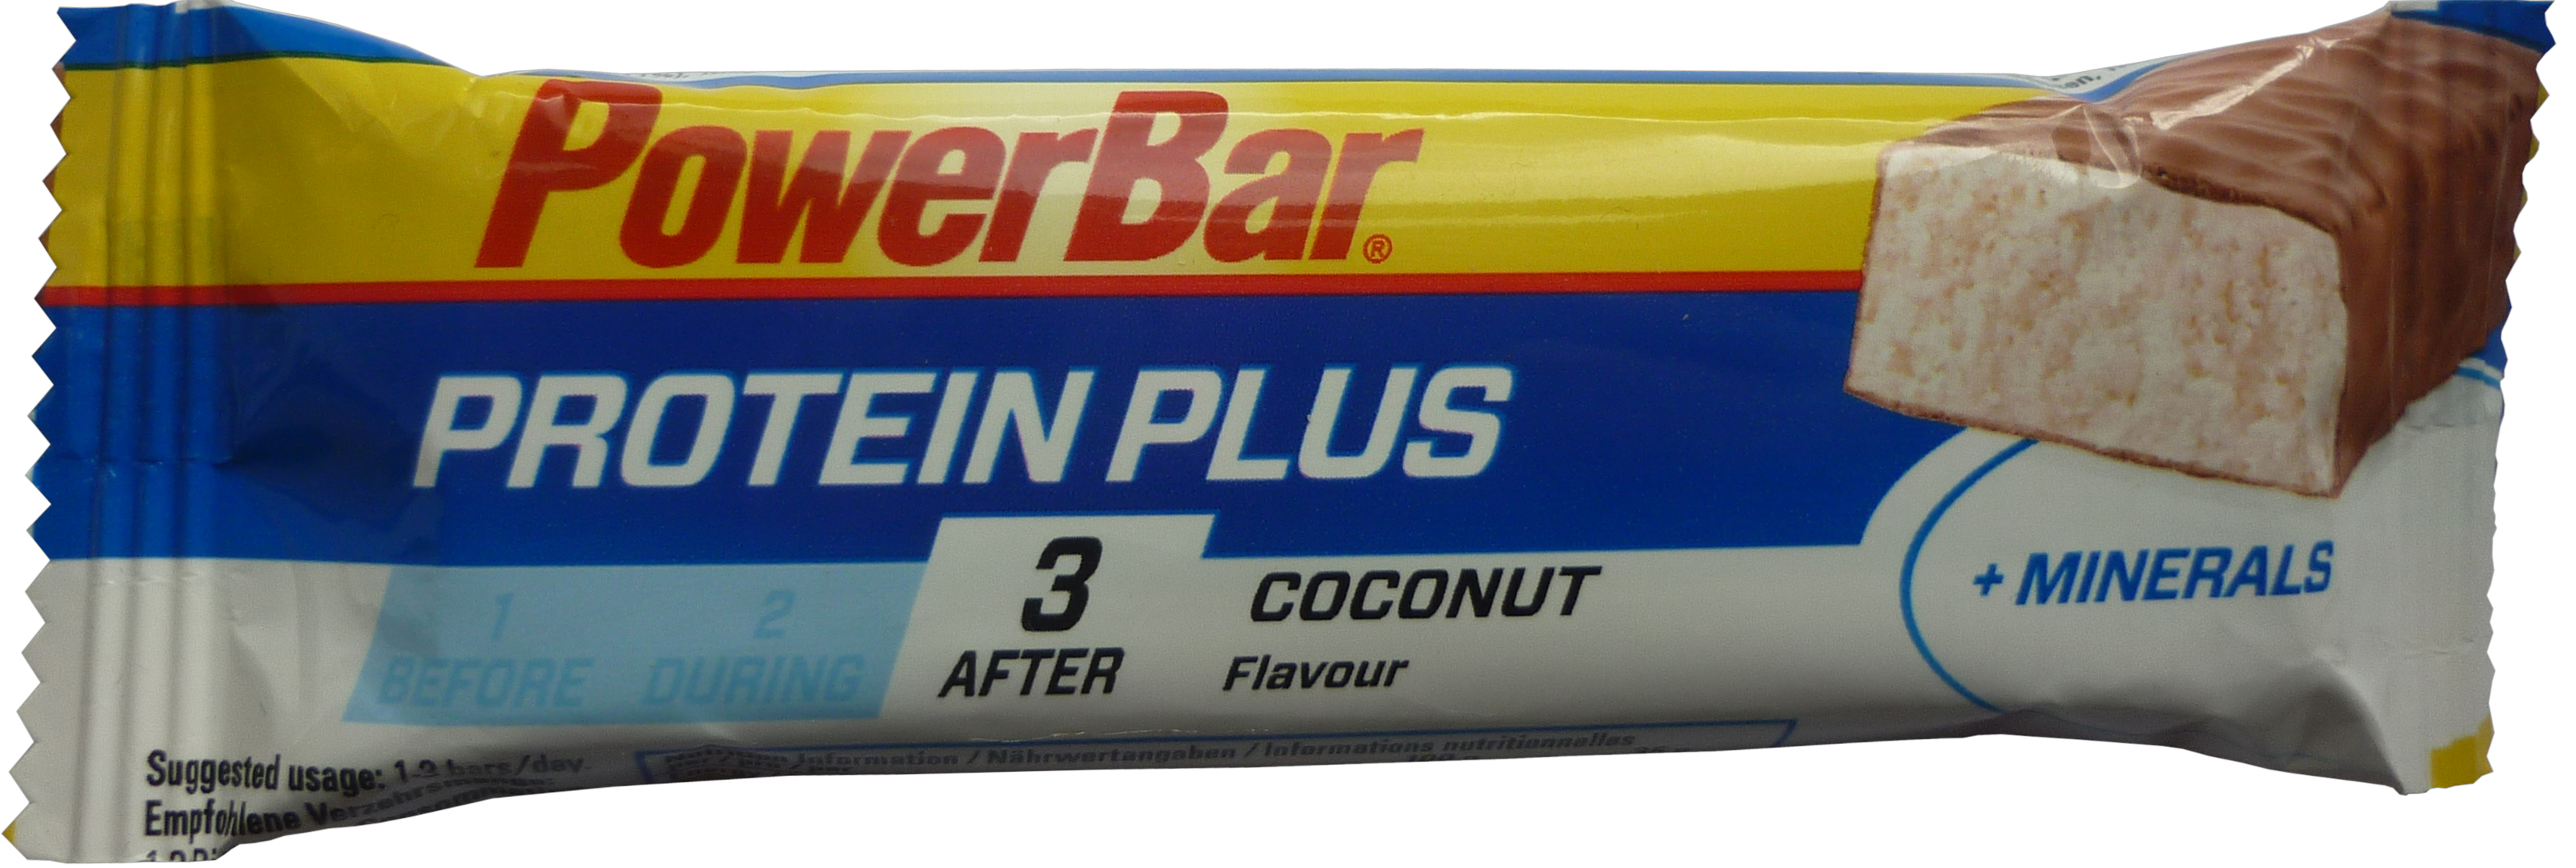 PowerBar Protein Plus - Coconut